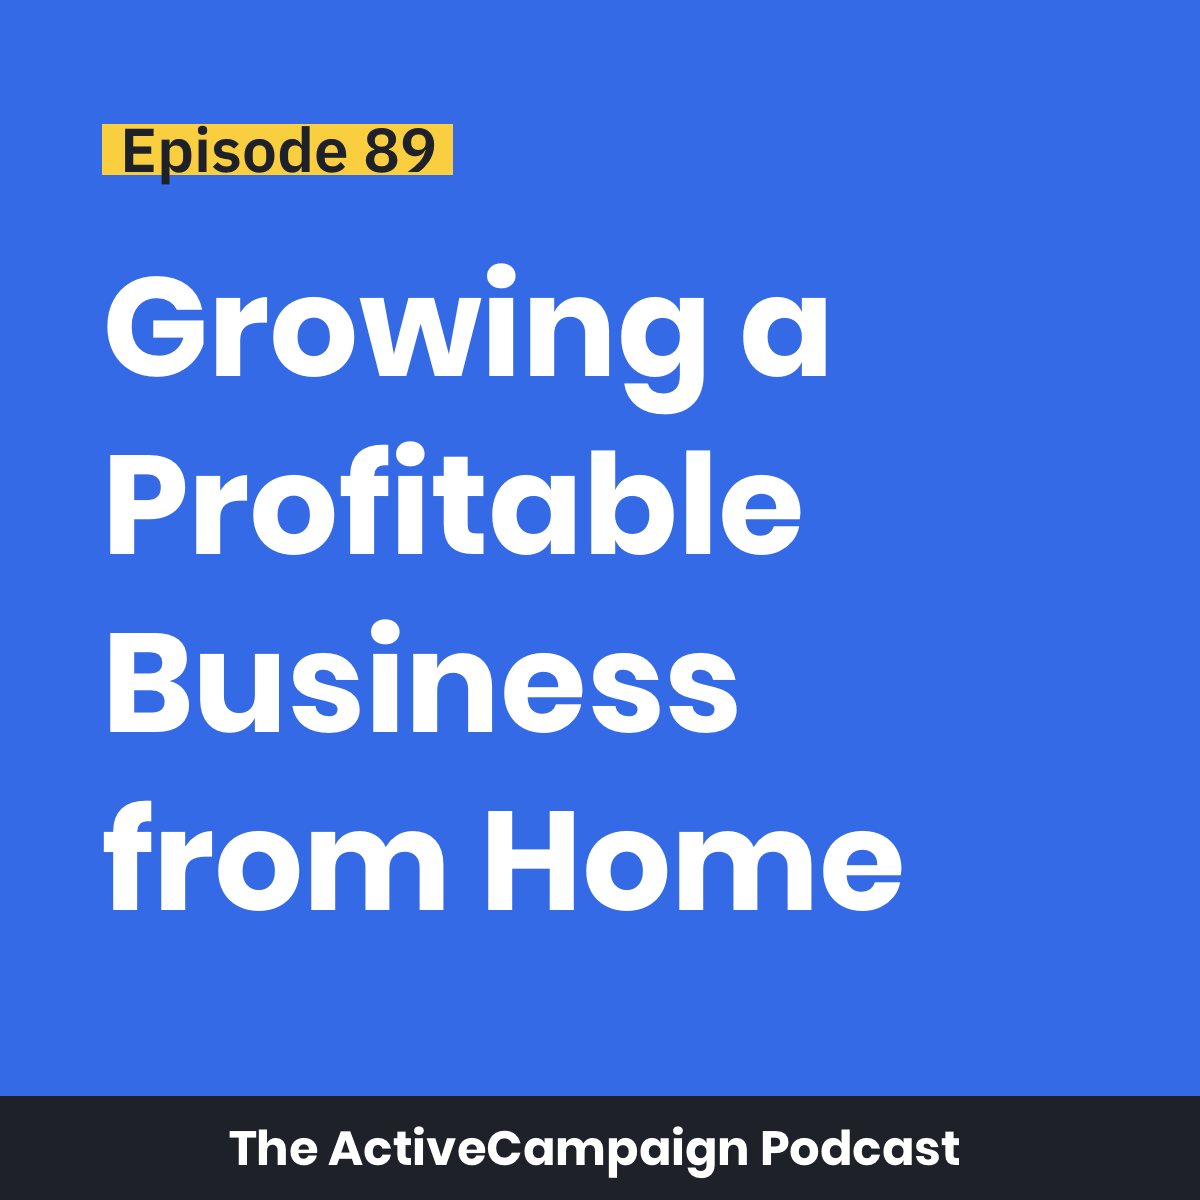 Episode 89: Growing a Profitable Business from Home